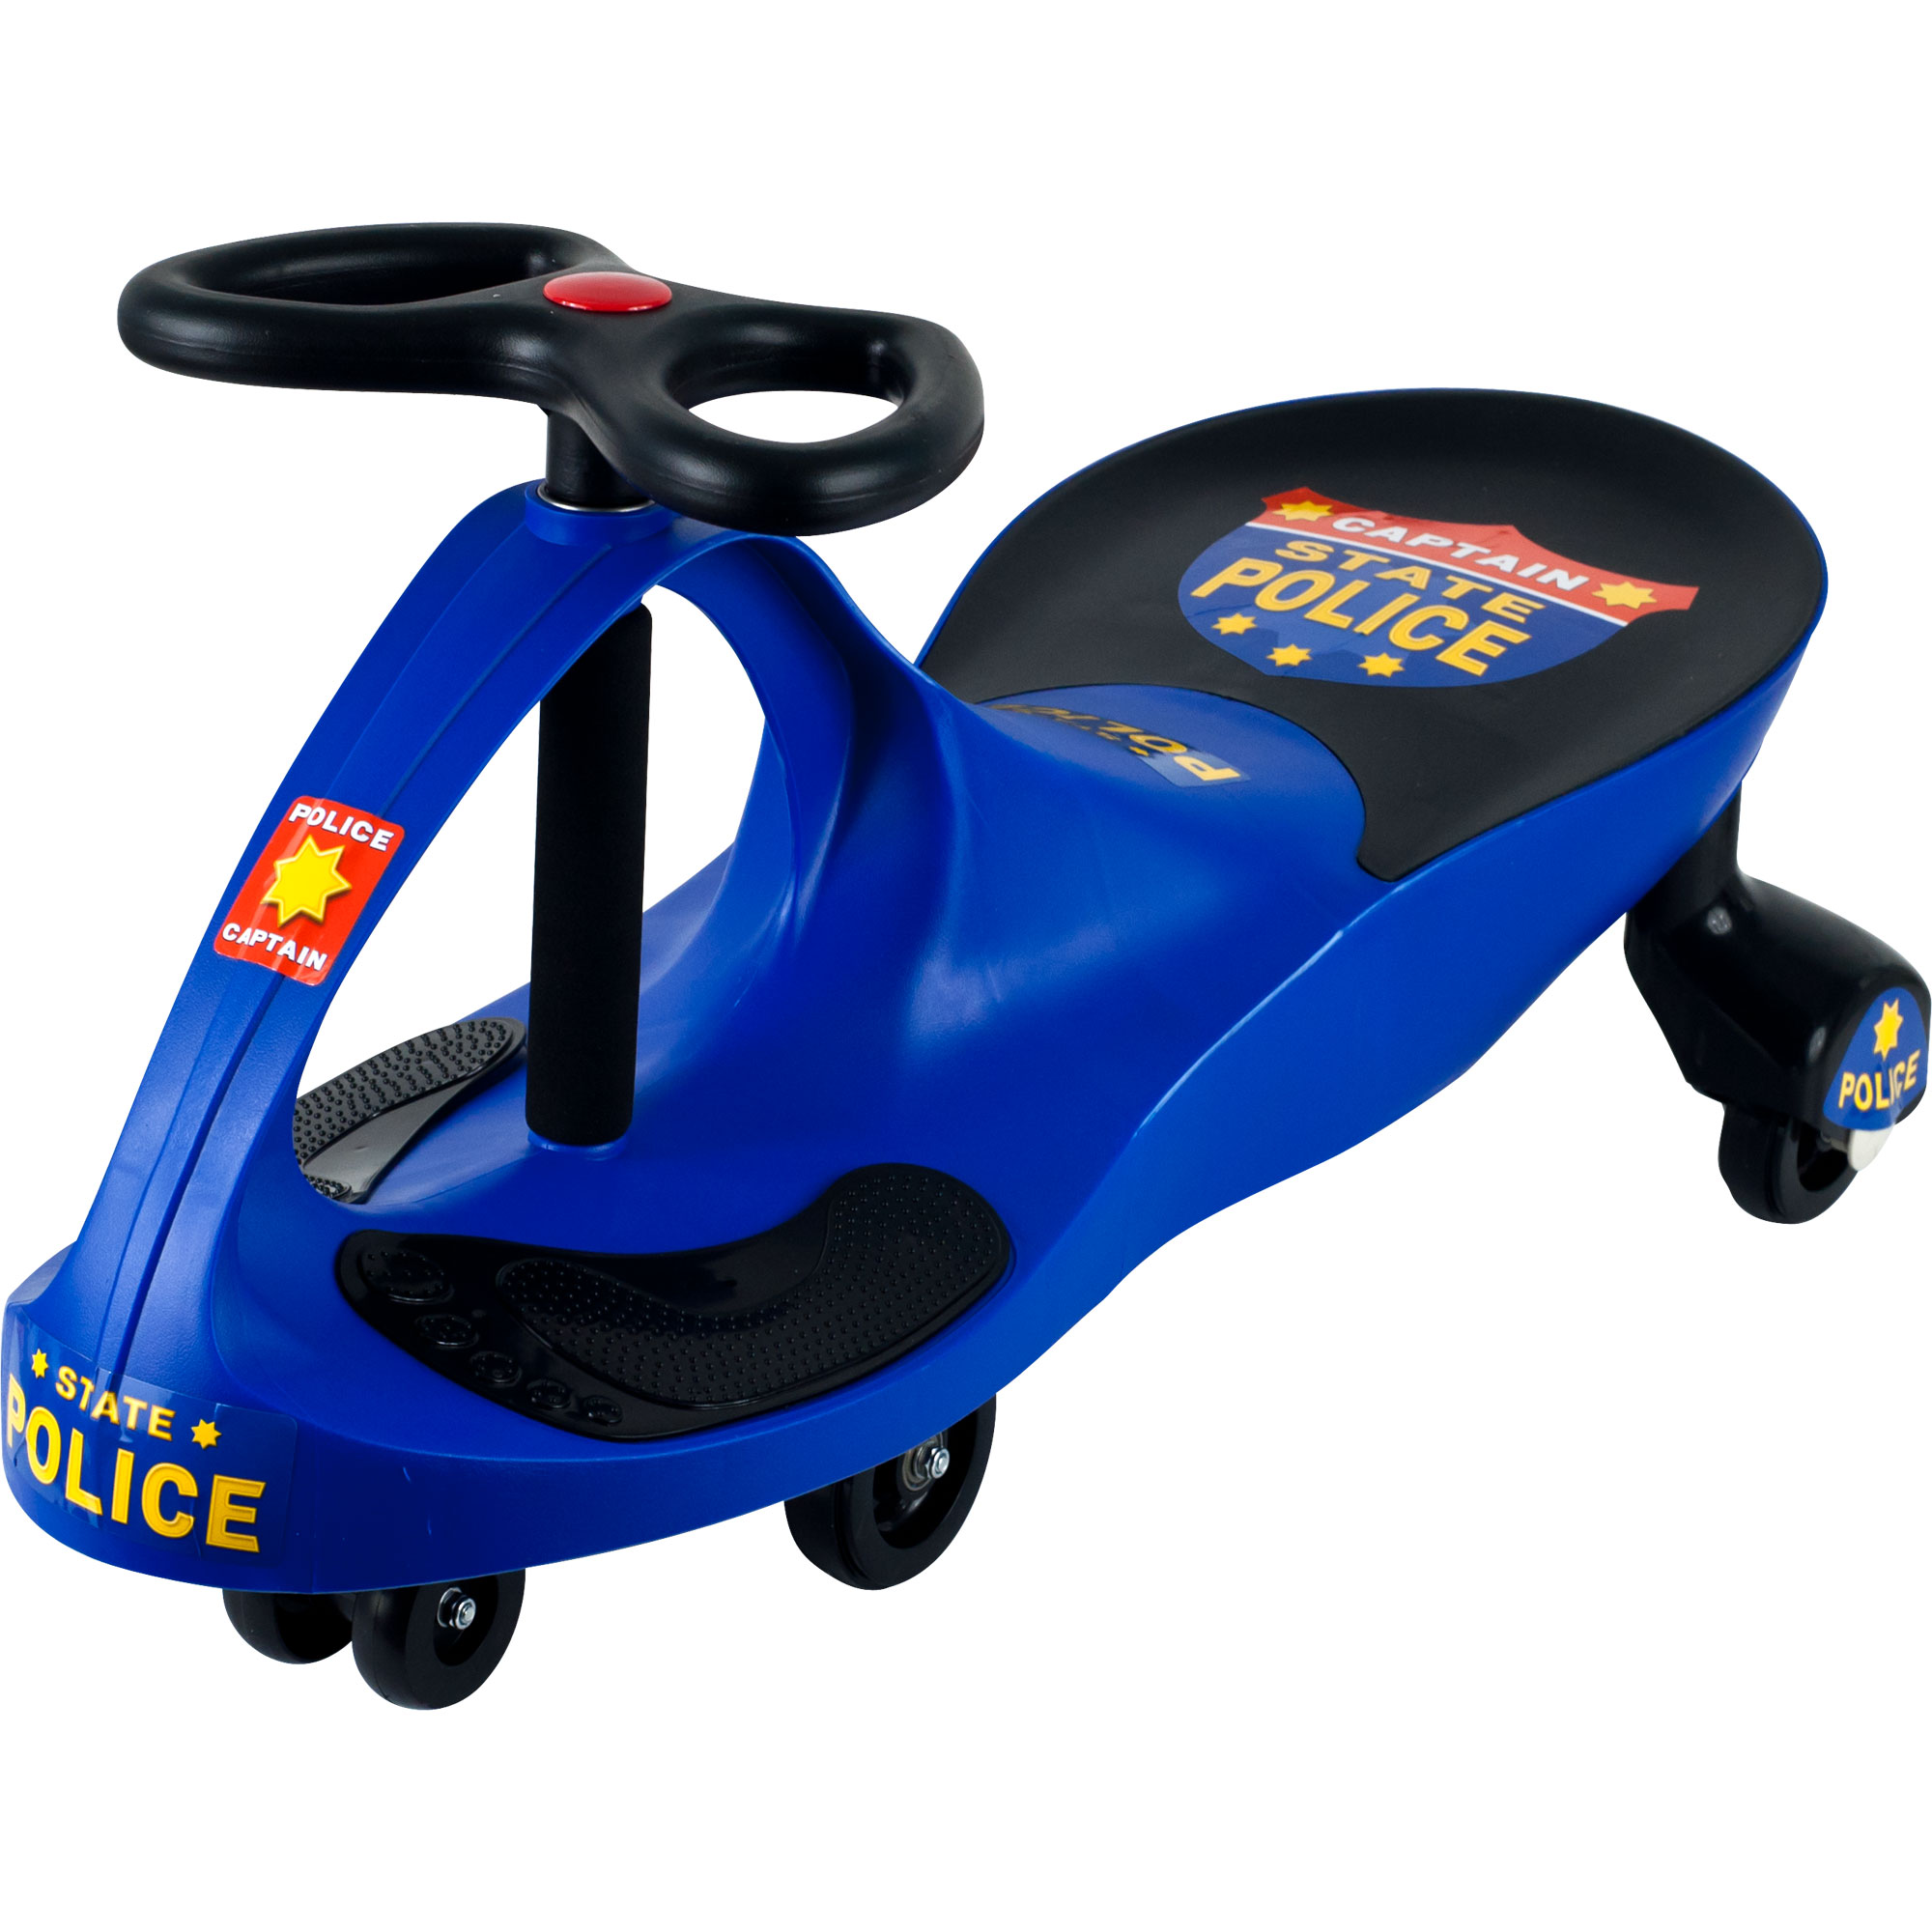 Ride on Toy, Police Car Ride on Wiggle Car by Hey! Play! – Ride on Toys for Boys and Girls, 2 Year Old And Up